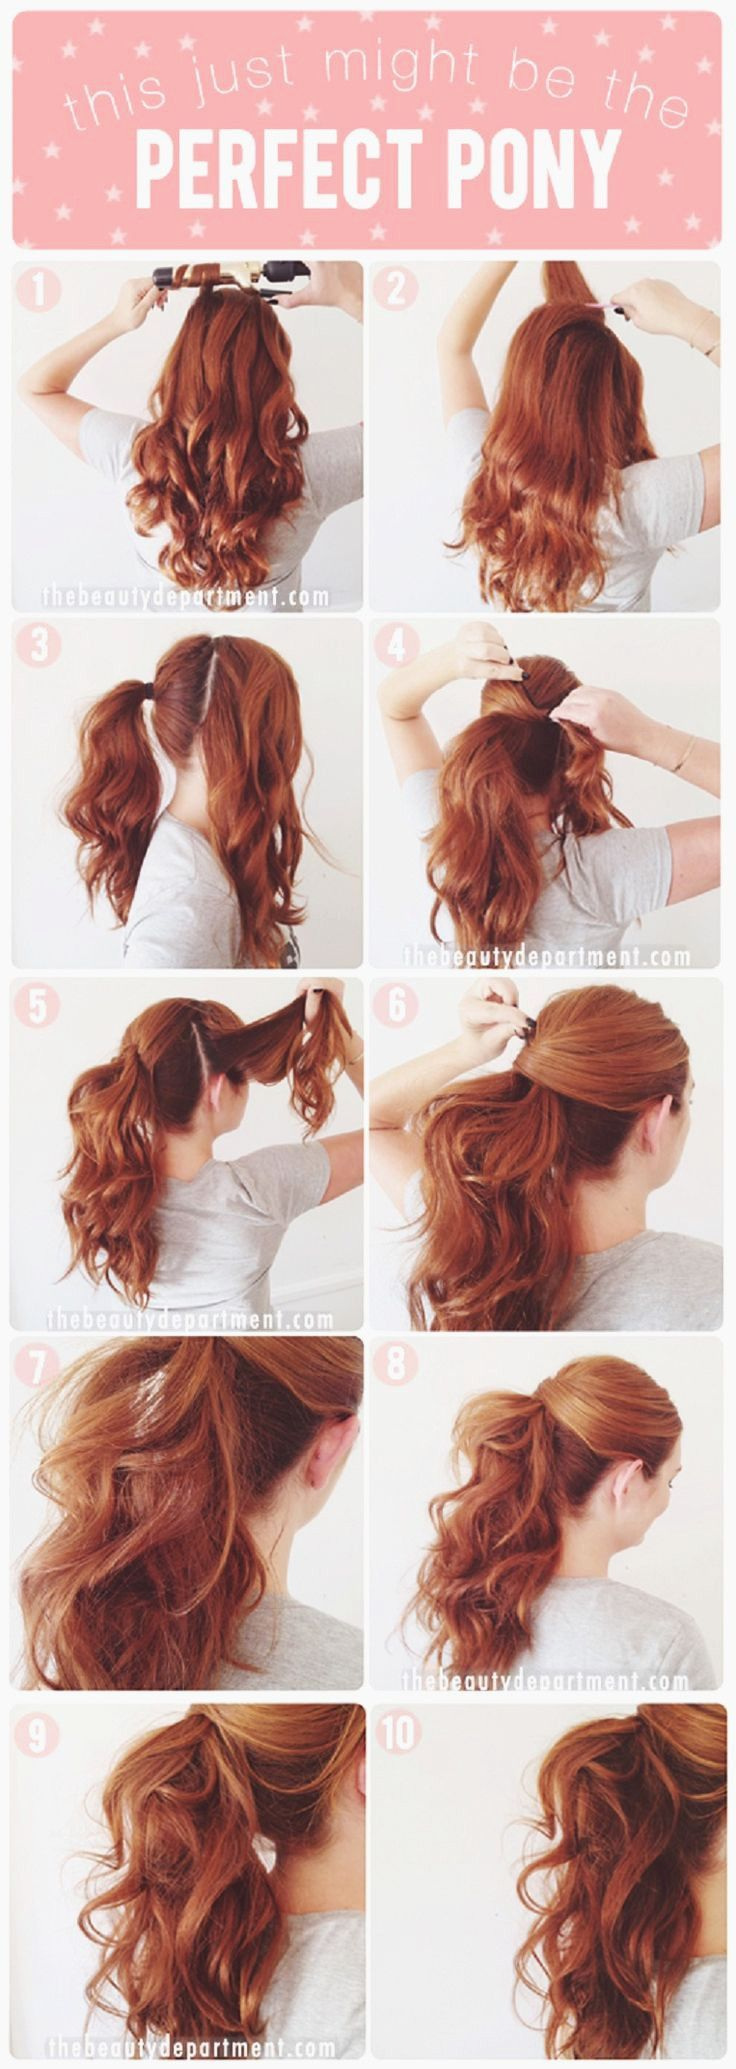 10 Lovely Ponytail Hair Ideas For Long Hair - Page 30 of 31 - HairPush #‎naturalskincare‬‬‬‬‬ ‪#‎skincareproducts‬‬‬‬‬ ‪#‎Australianskincare ‬‬‬‬‬‪#‎AqiskinCare‬‬‬‬‬‬‬‬‬‬ ‪#‎australianmade‬‬‬‬‬‬‬‬